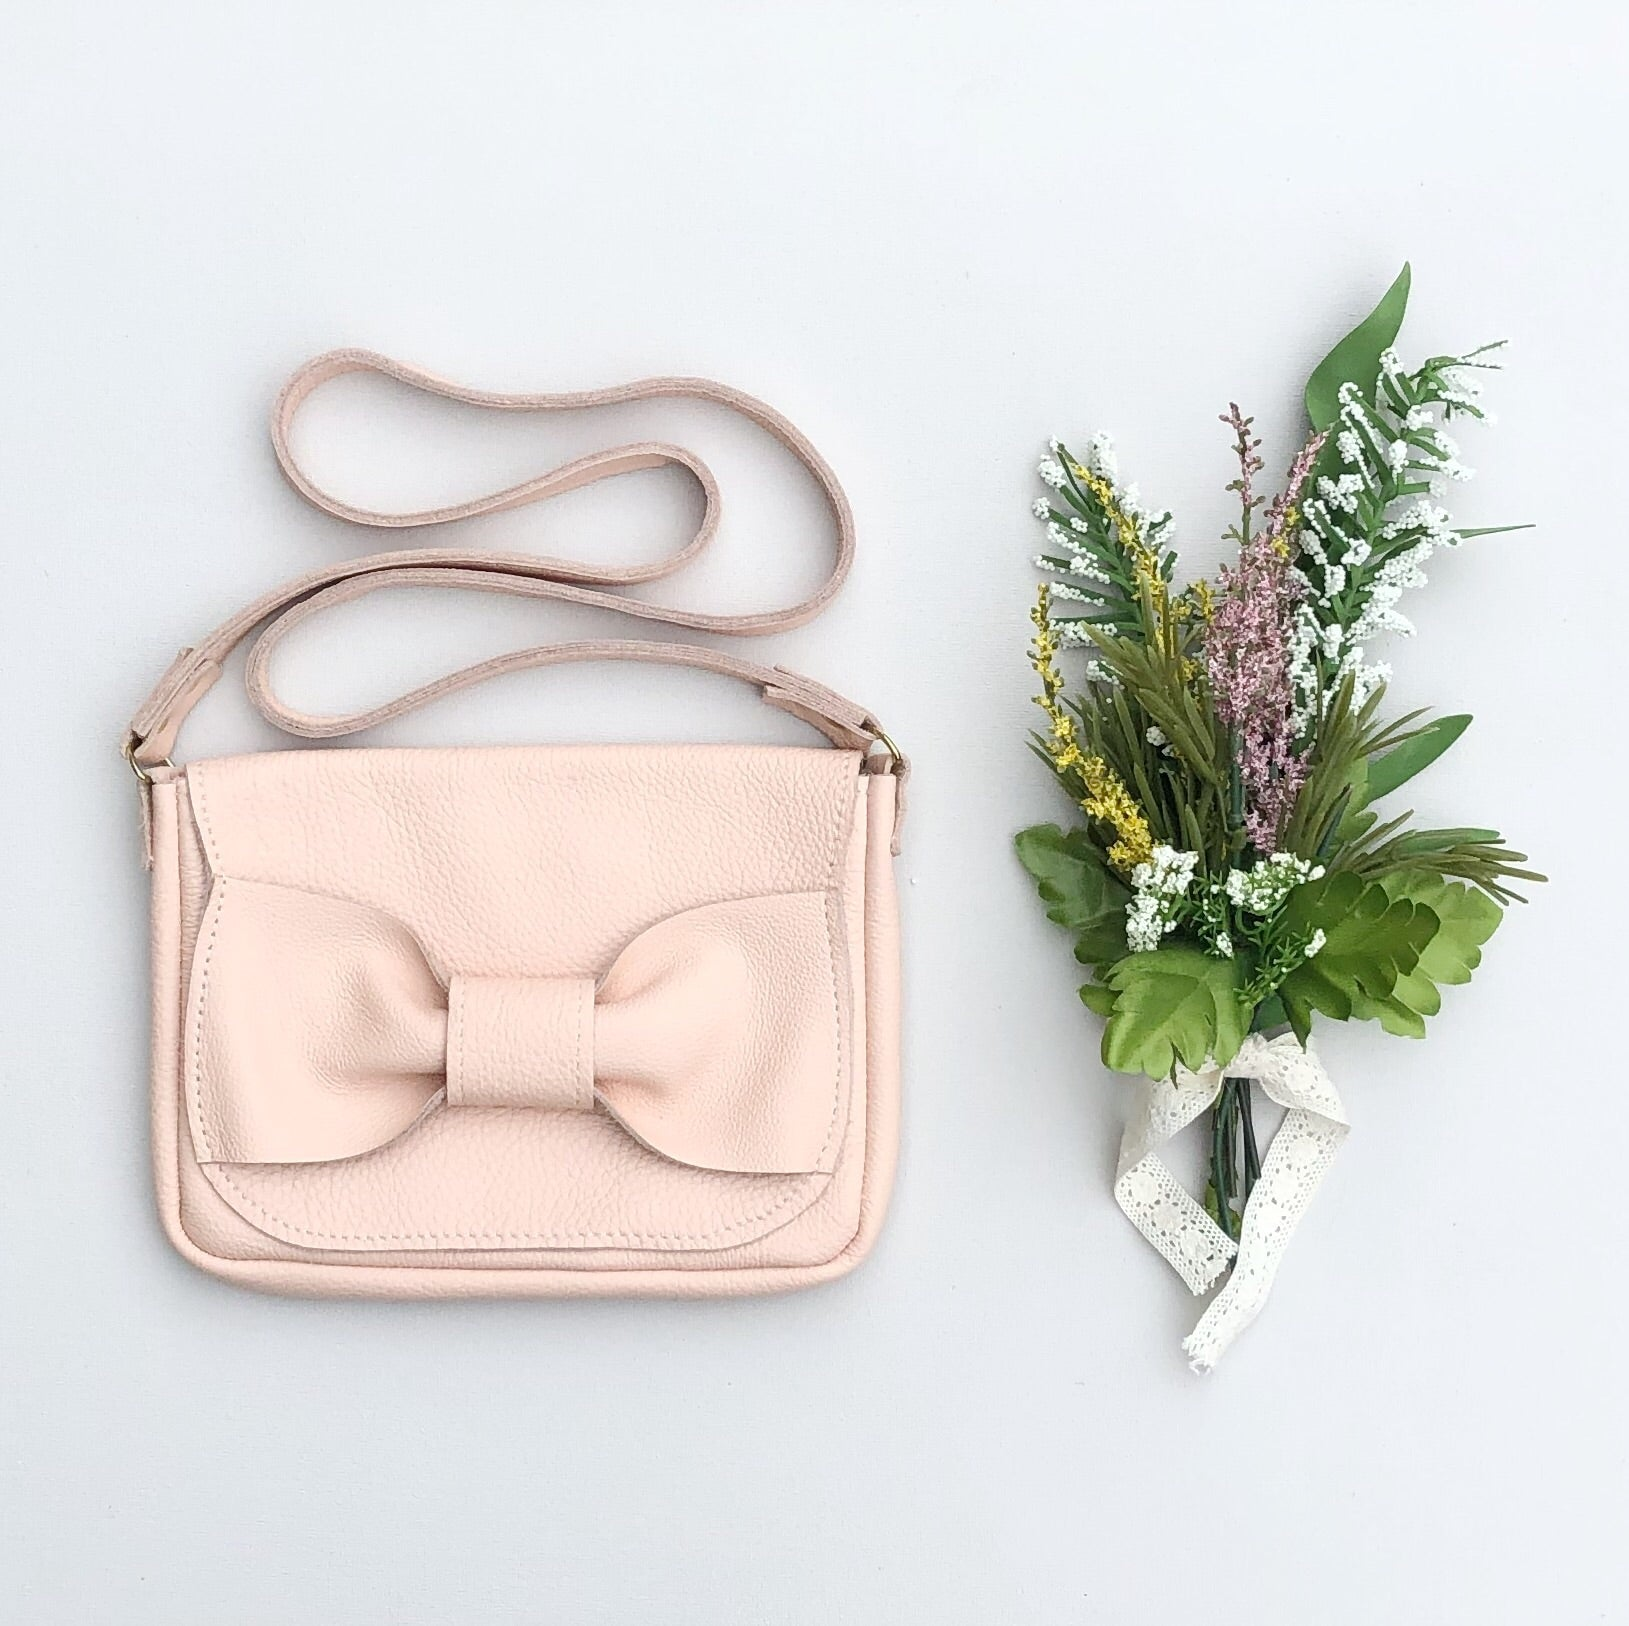 LUX BOW PURSE